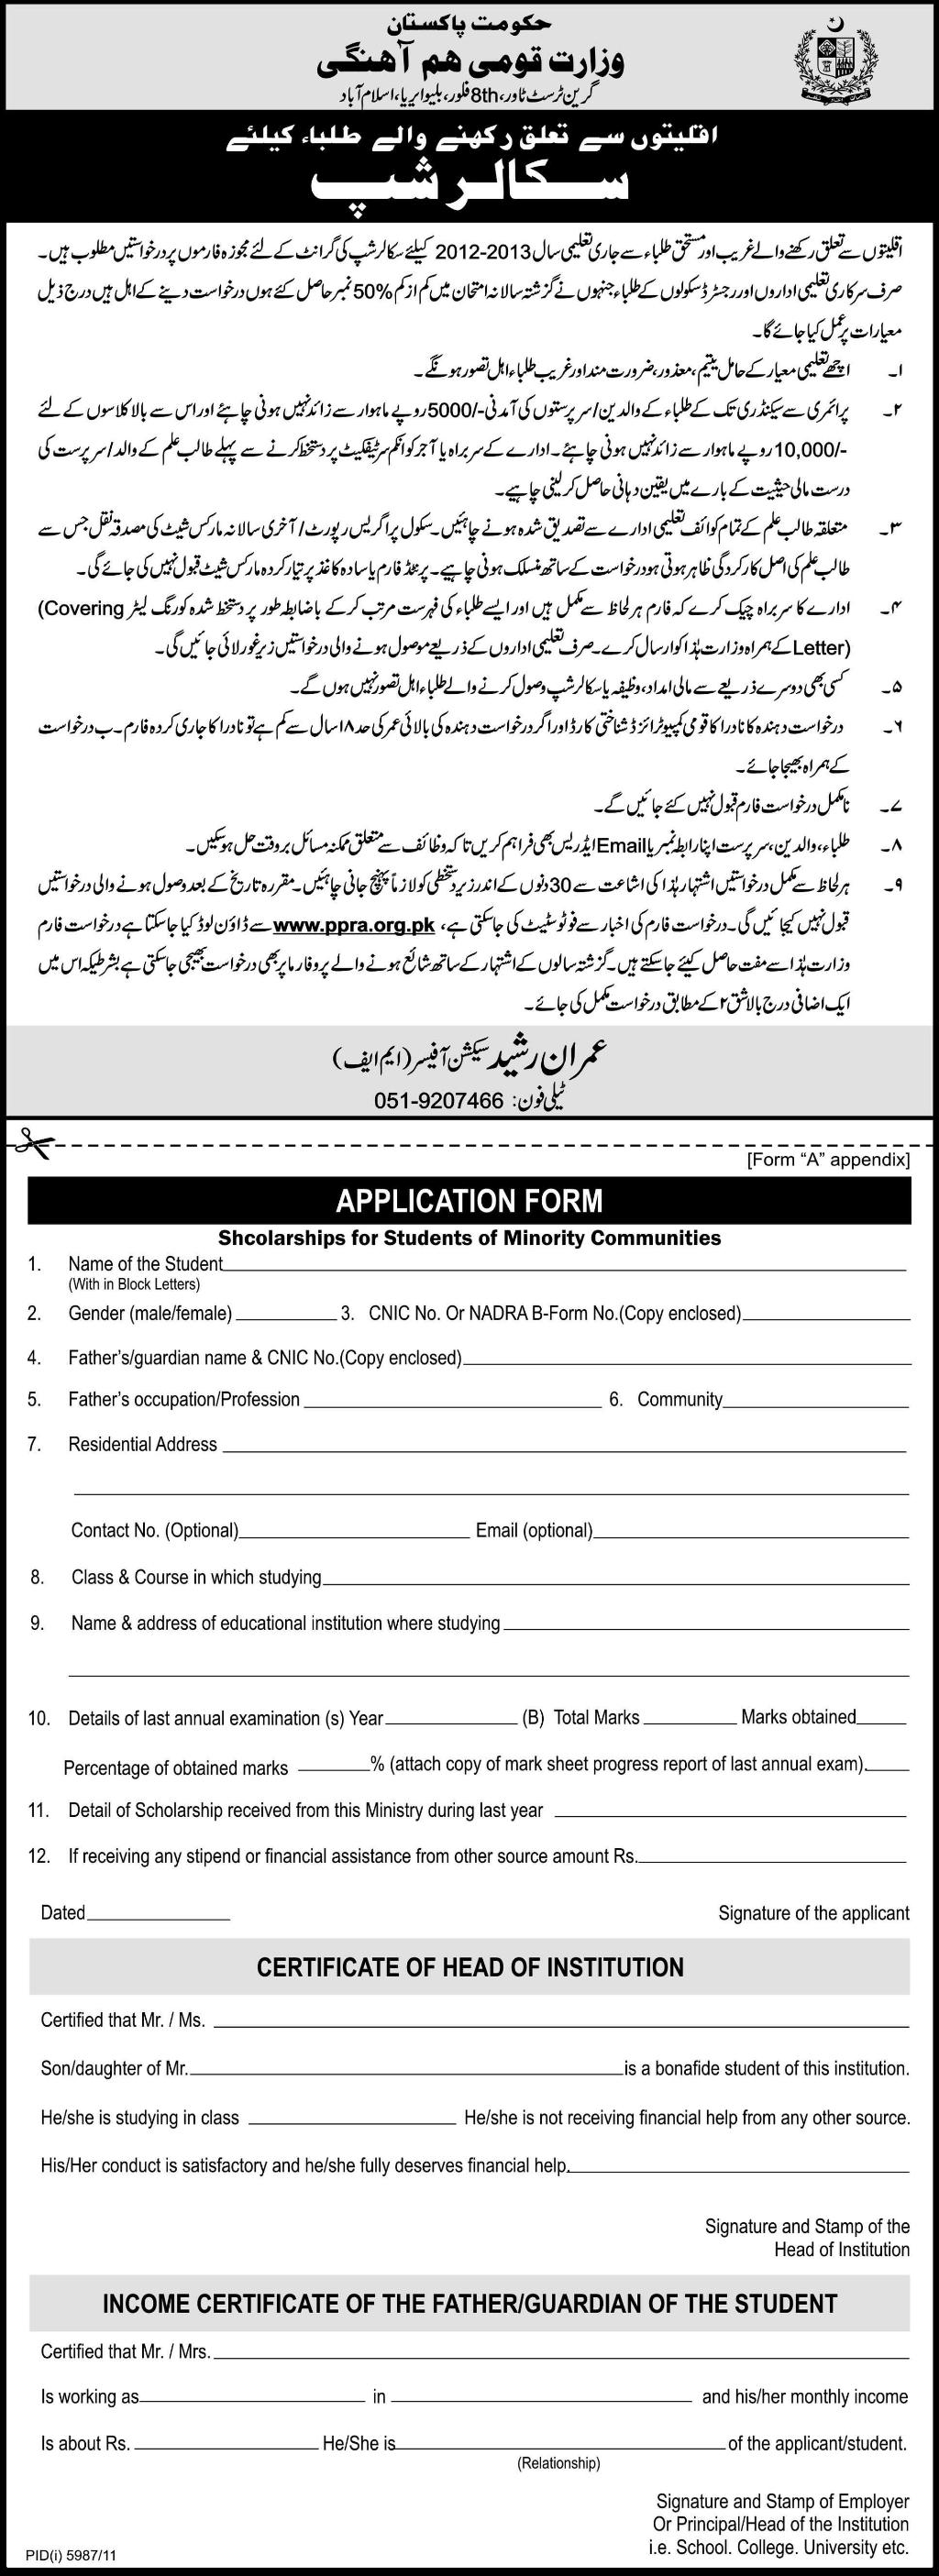 scholarships in pakistan Government Scholarships for Minorities Students of Pakistan